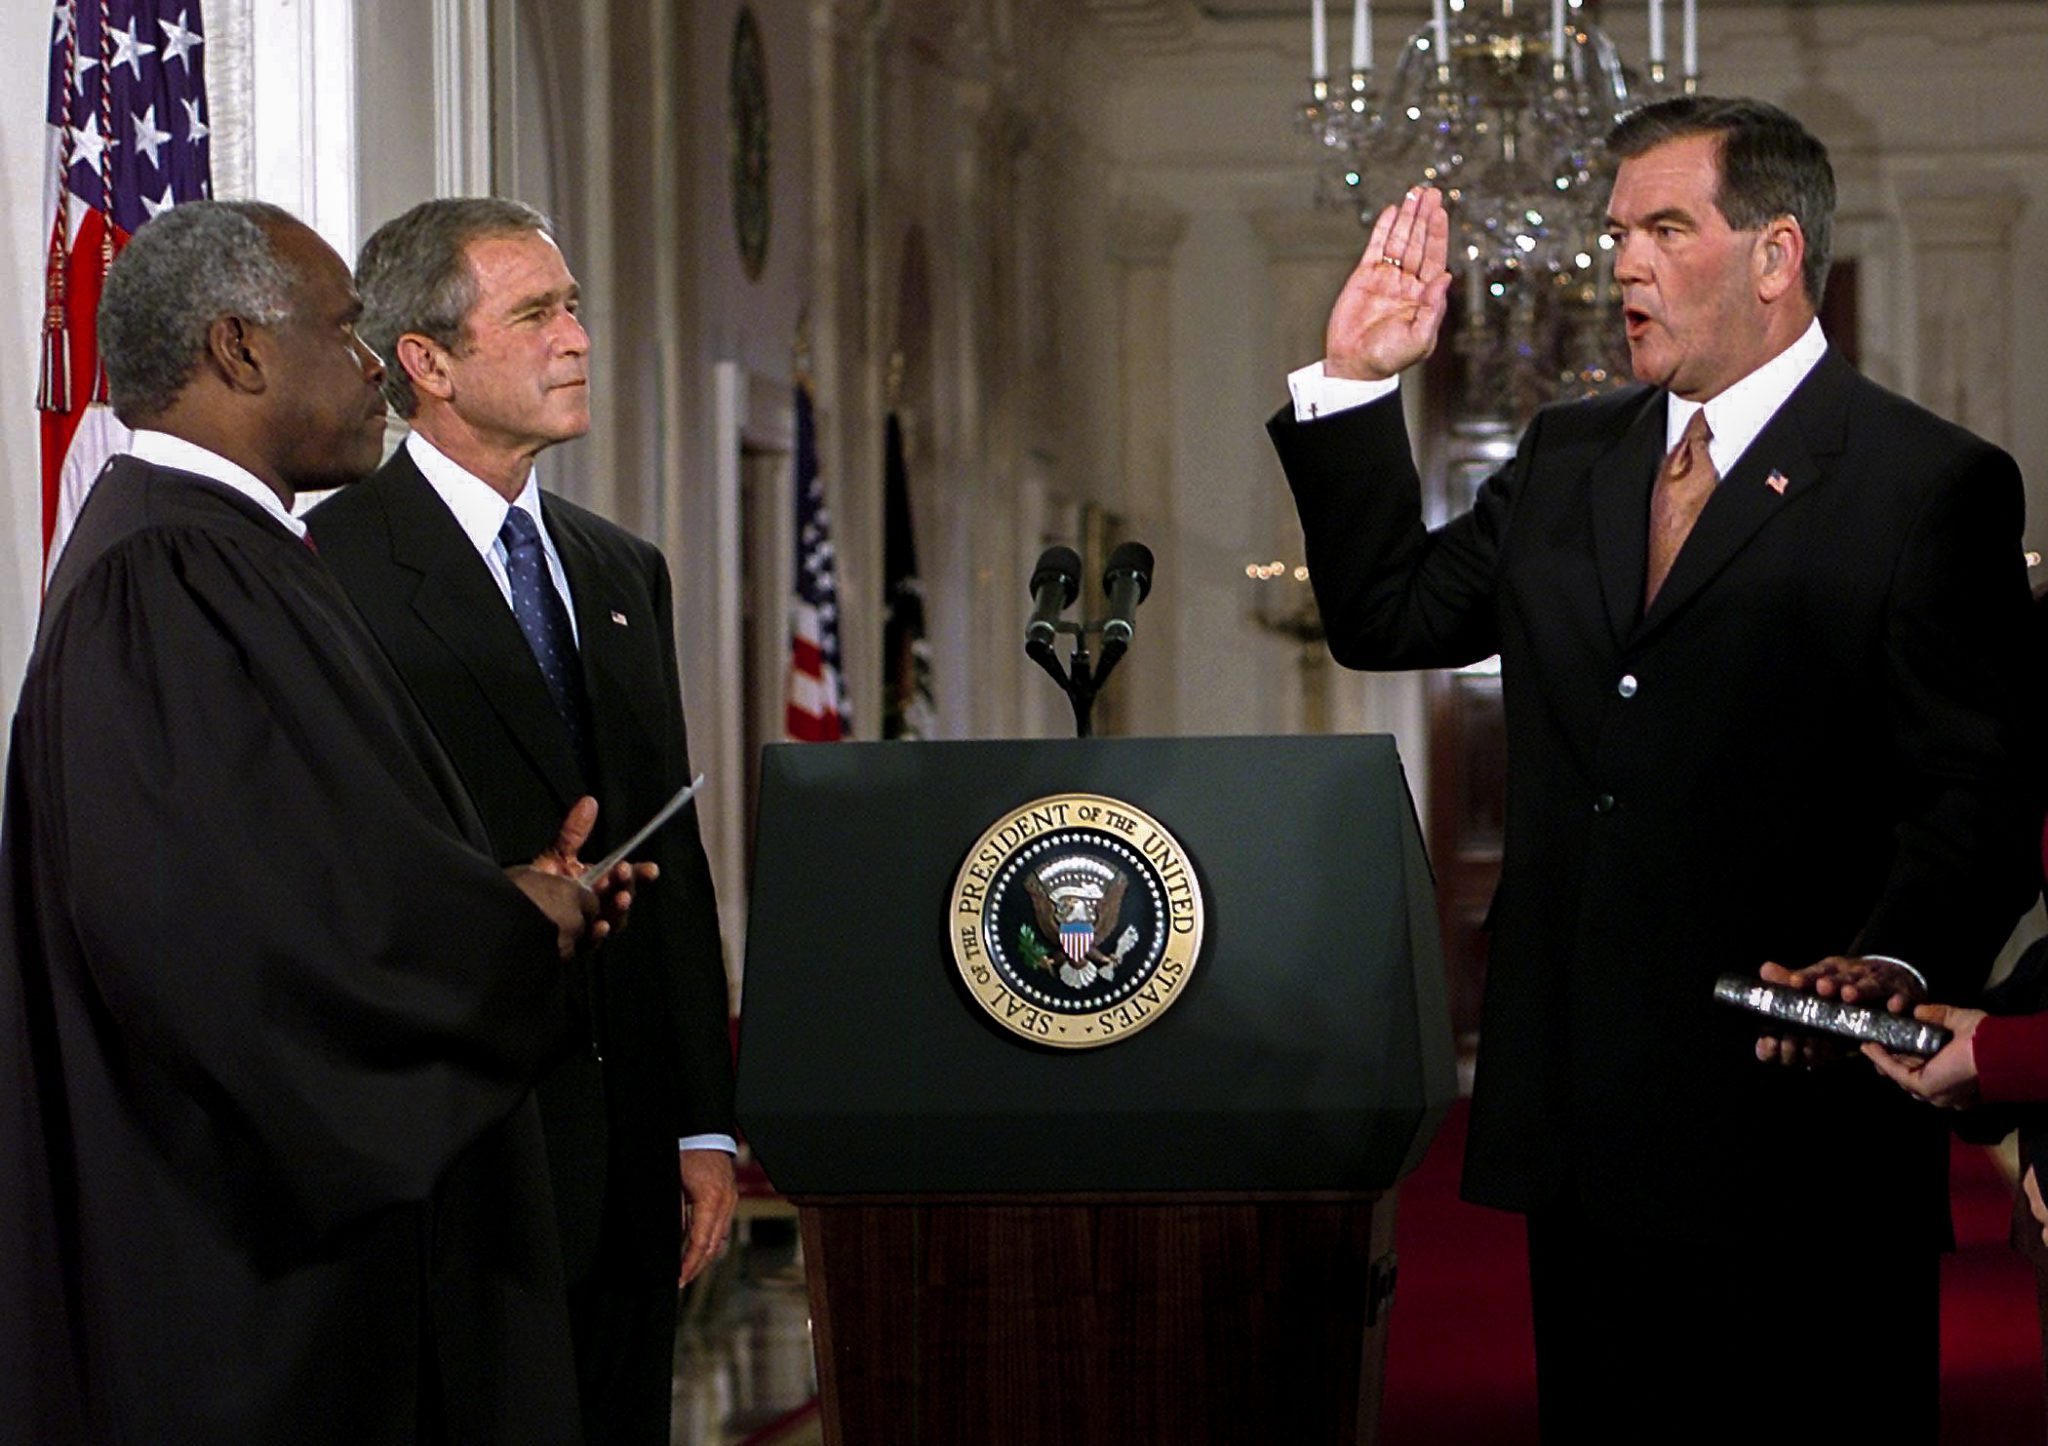 WASHINGTON, UNITED STATES:  Former Pennsylvania governor Tom Ridge (R) is sworn-in as Director of the newly created Cabinet-level position of the Office of Homeland Security 08 October, 2001 by Supreme Court Justice Clarence Thomas (L) as US President George W. Bush watches in the East Room of the White House in Washington, DC. The new position was created by the president to deal with terrorism within US borders.   AFP Photo/Paul J. Richards (Photo credit should read PAUL J. RICHARDS/AFP via Getty Images)